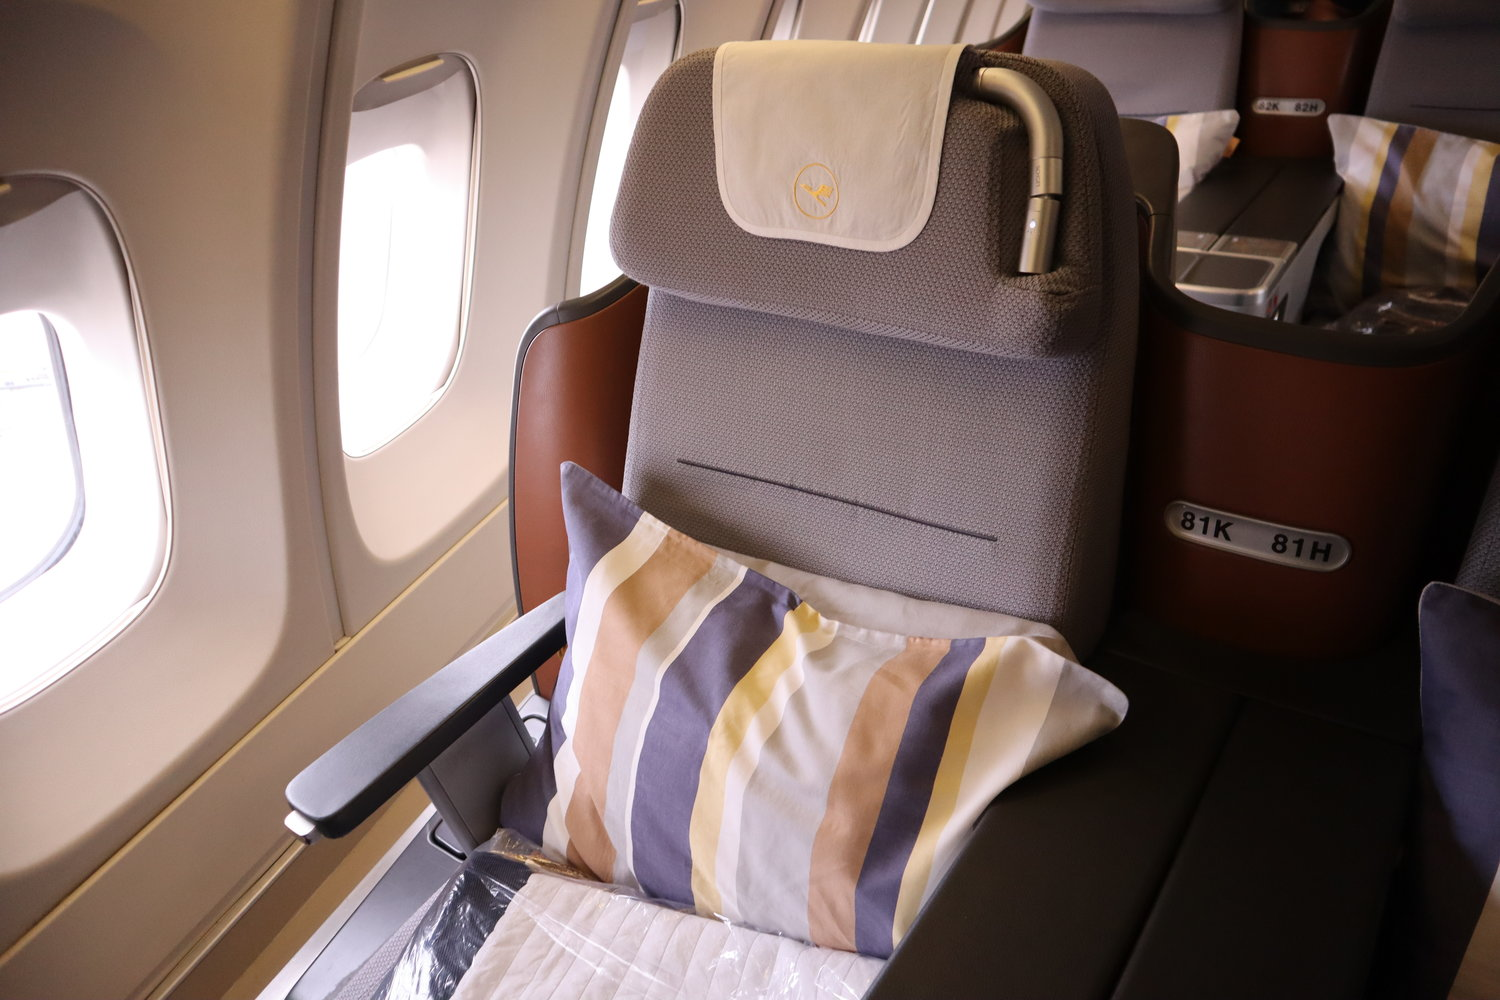 Wondrous Review Lufthansa Business Class Toronto To Frankfurt Gmtry Best Dining Table And Chair Ideas Images Gmtryco